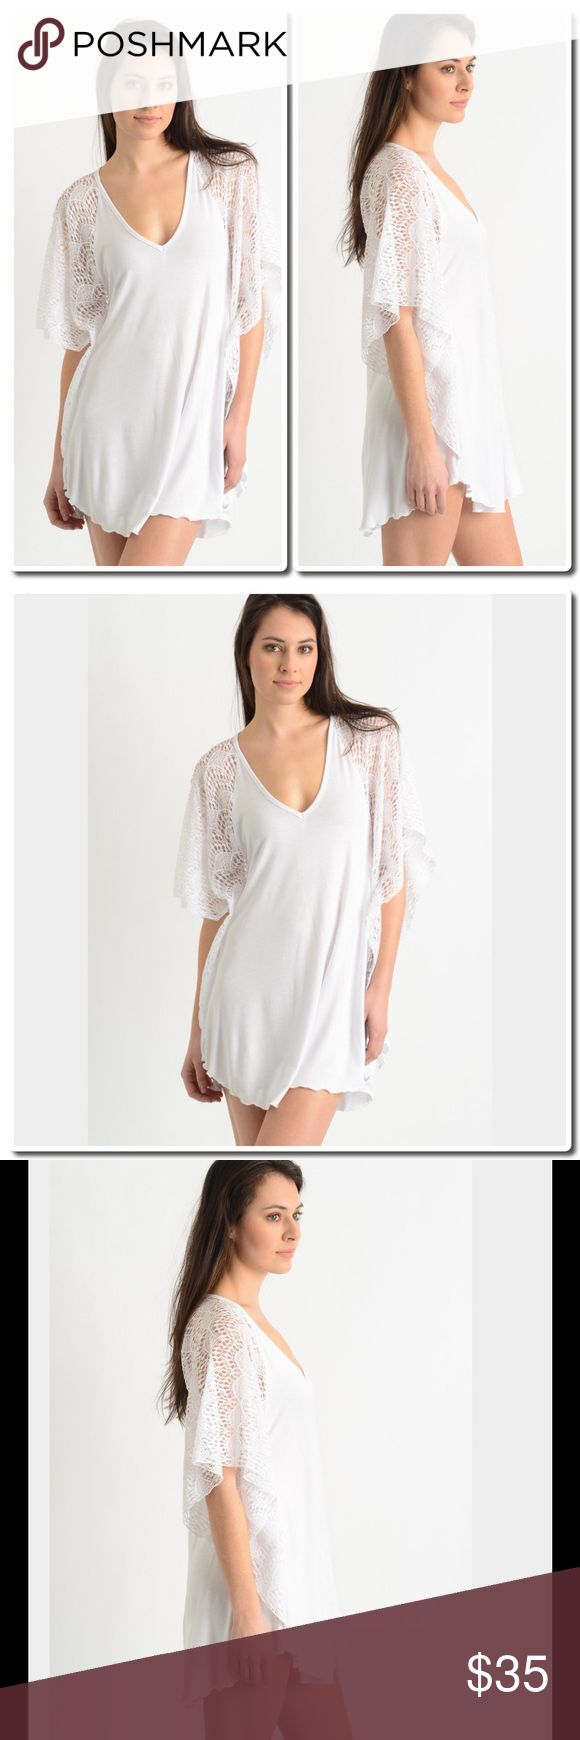 "NWOT COMING SOON Crochet Batwing Tunic Top Cover up in killer style with this crochet batwing tunic from yours truly. Easy and breezy, this cover up is ready for bikini season.   Crochet tunic  Batwing sleeves V-neckline Ruffled hem 92% polyester / 8% spandex Hand wash cold, dry flat Measures approximately 32"" from shoulder Model shown wearing size small (S) Made in the USA Tops Tunics"